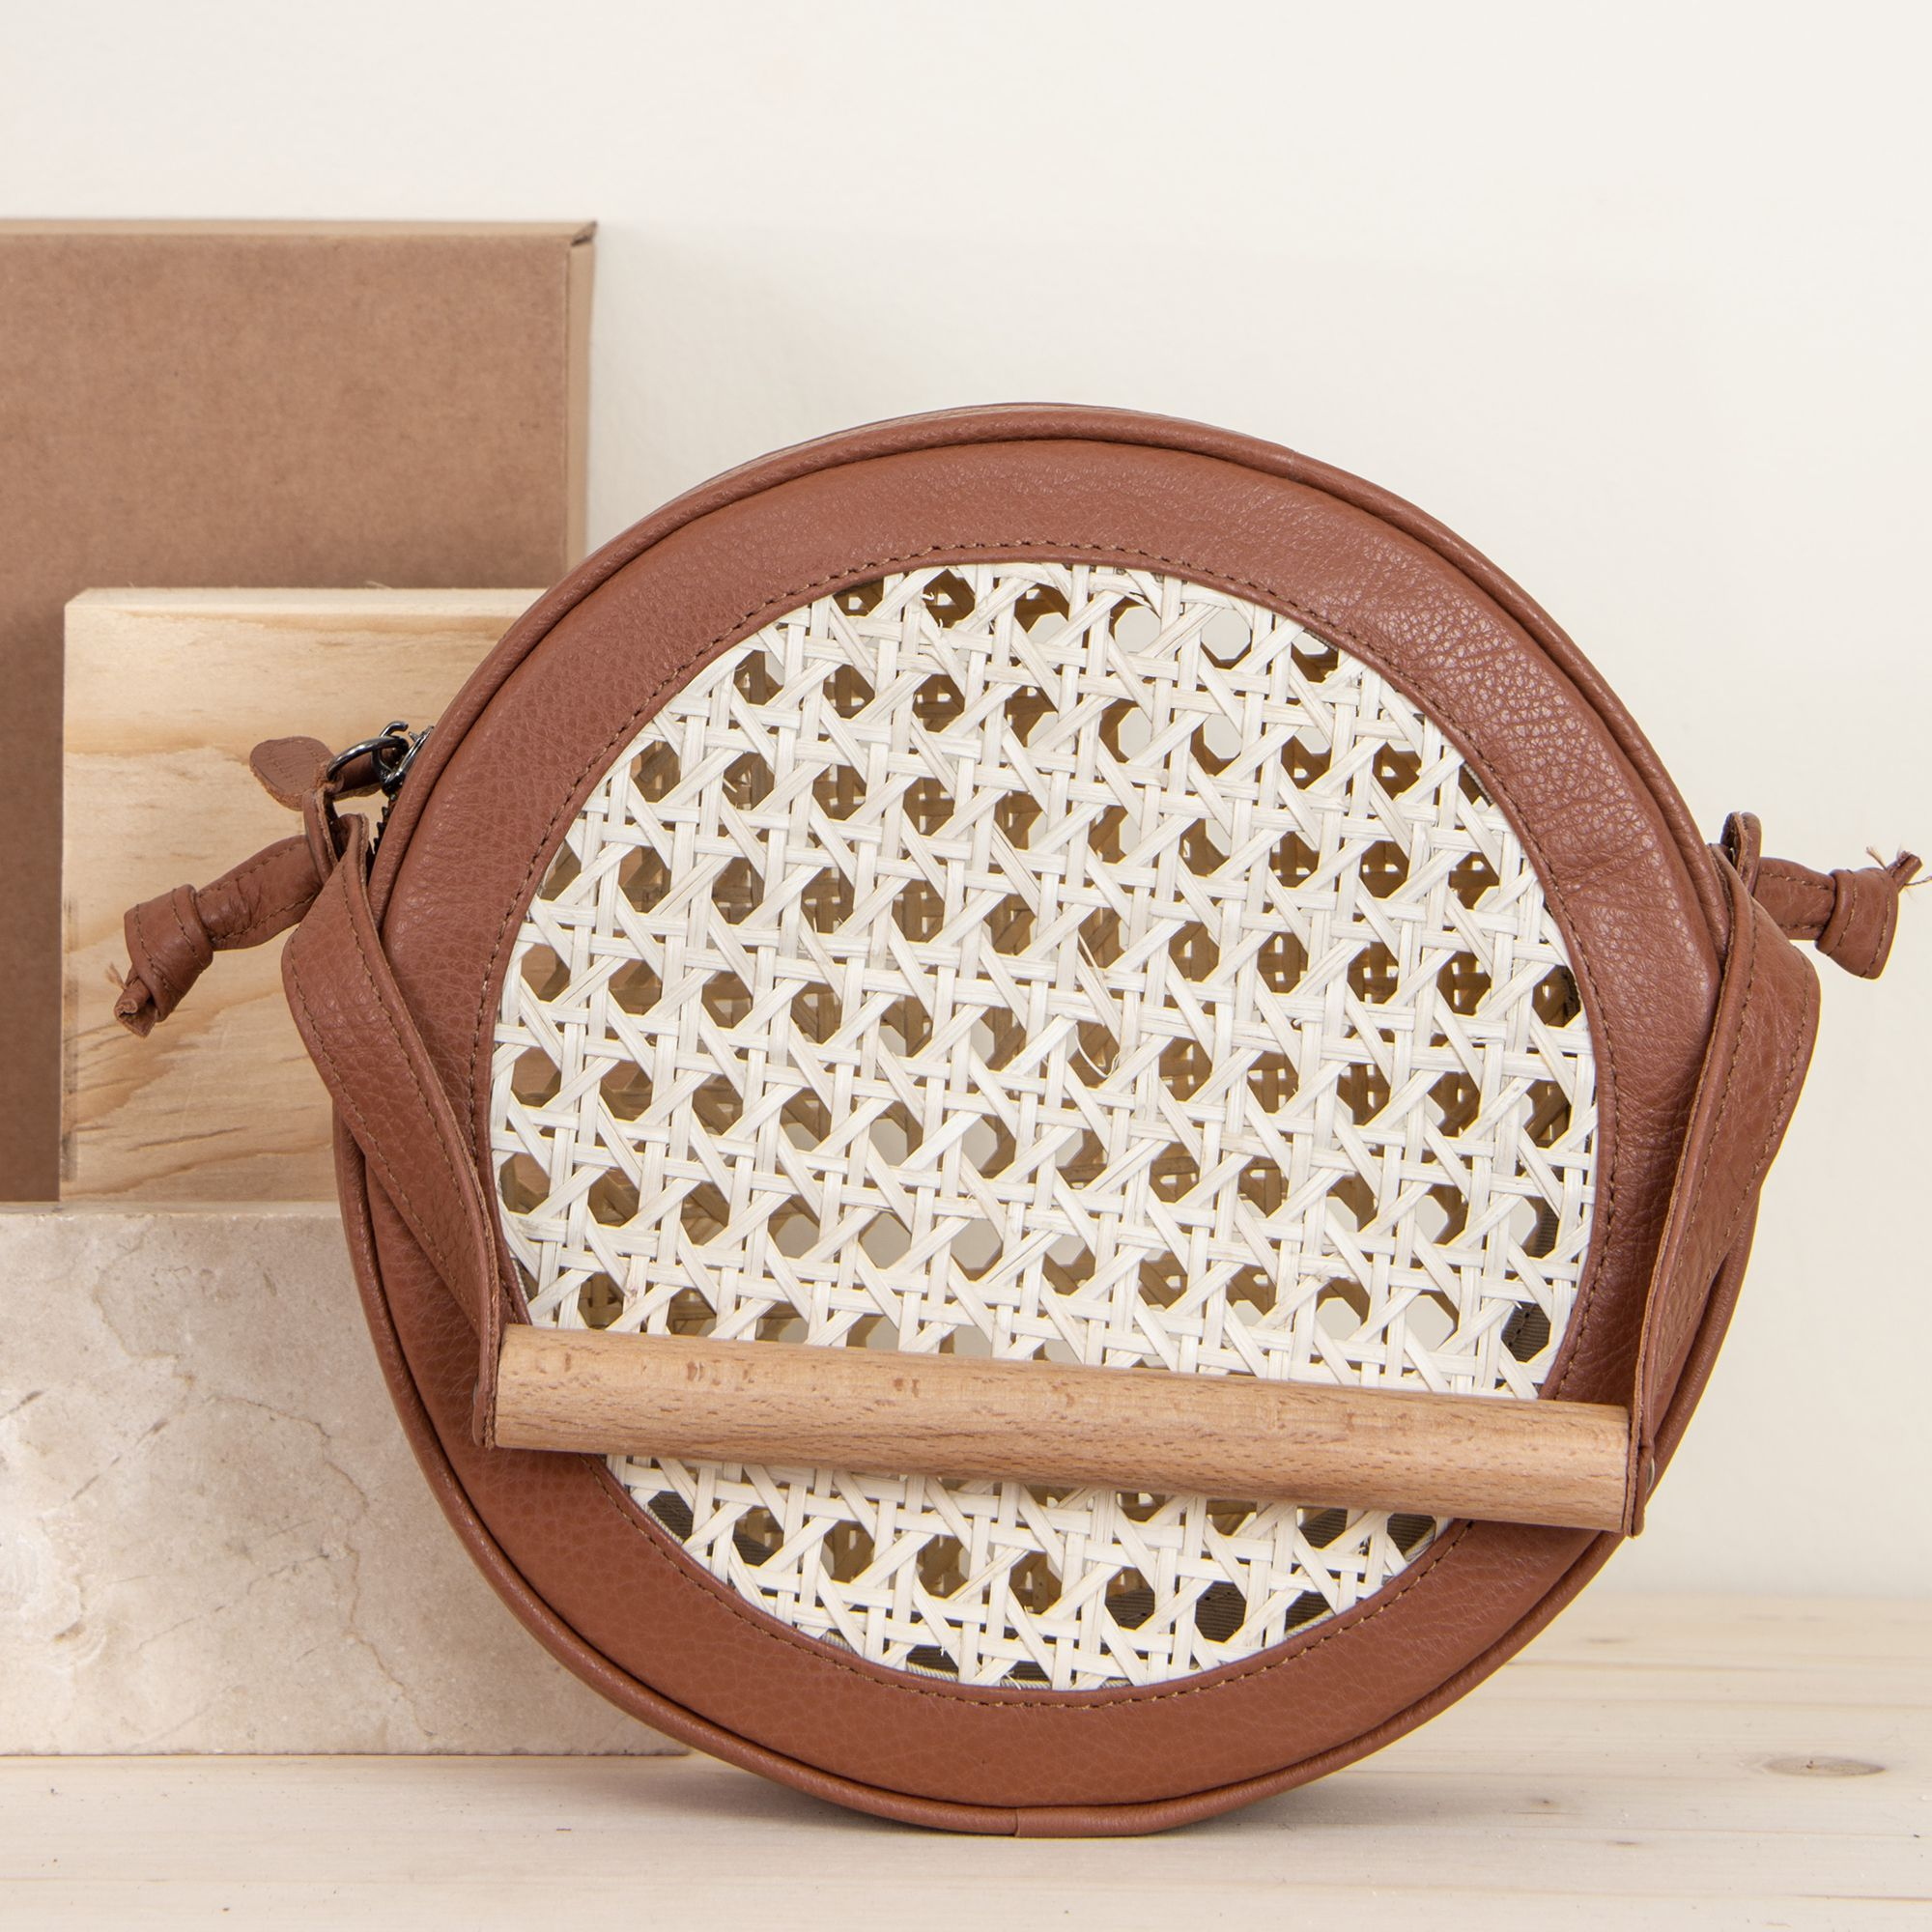 MERAKI Flaneur Clutch Earthy Brown & Straw